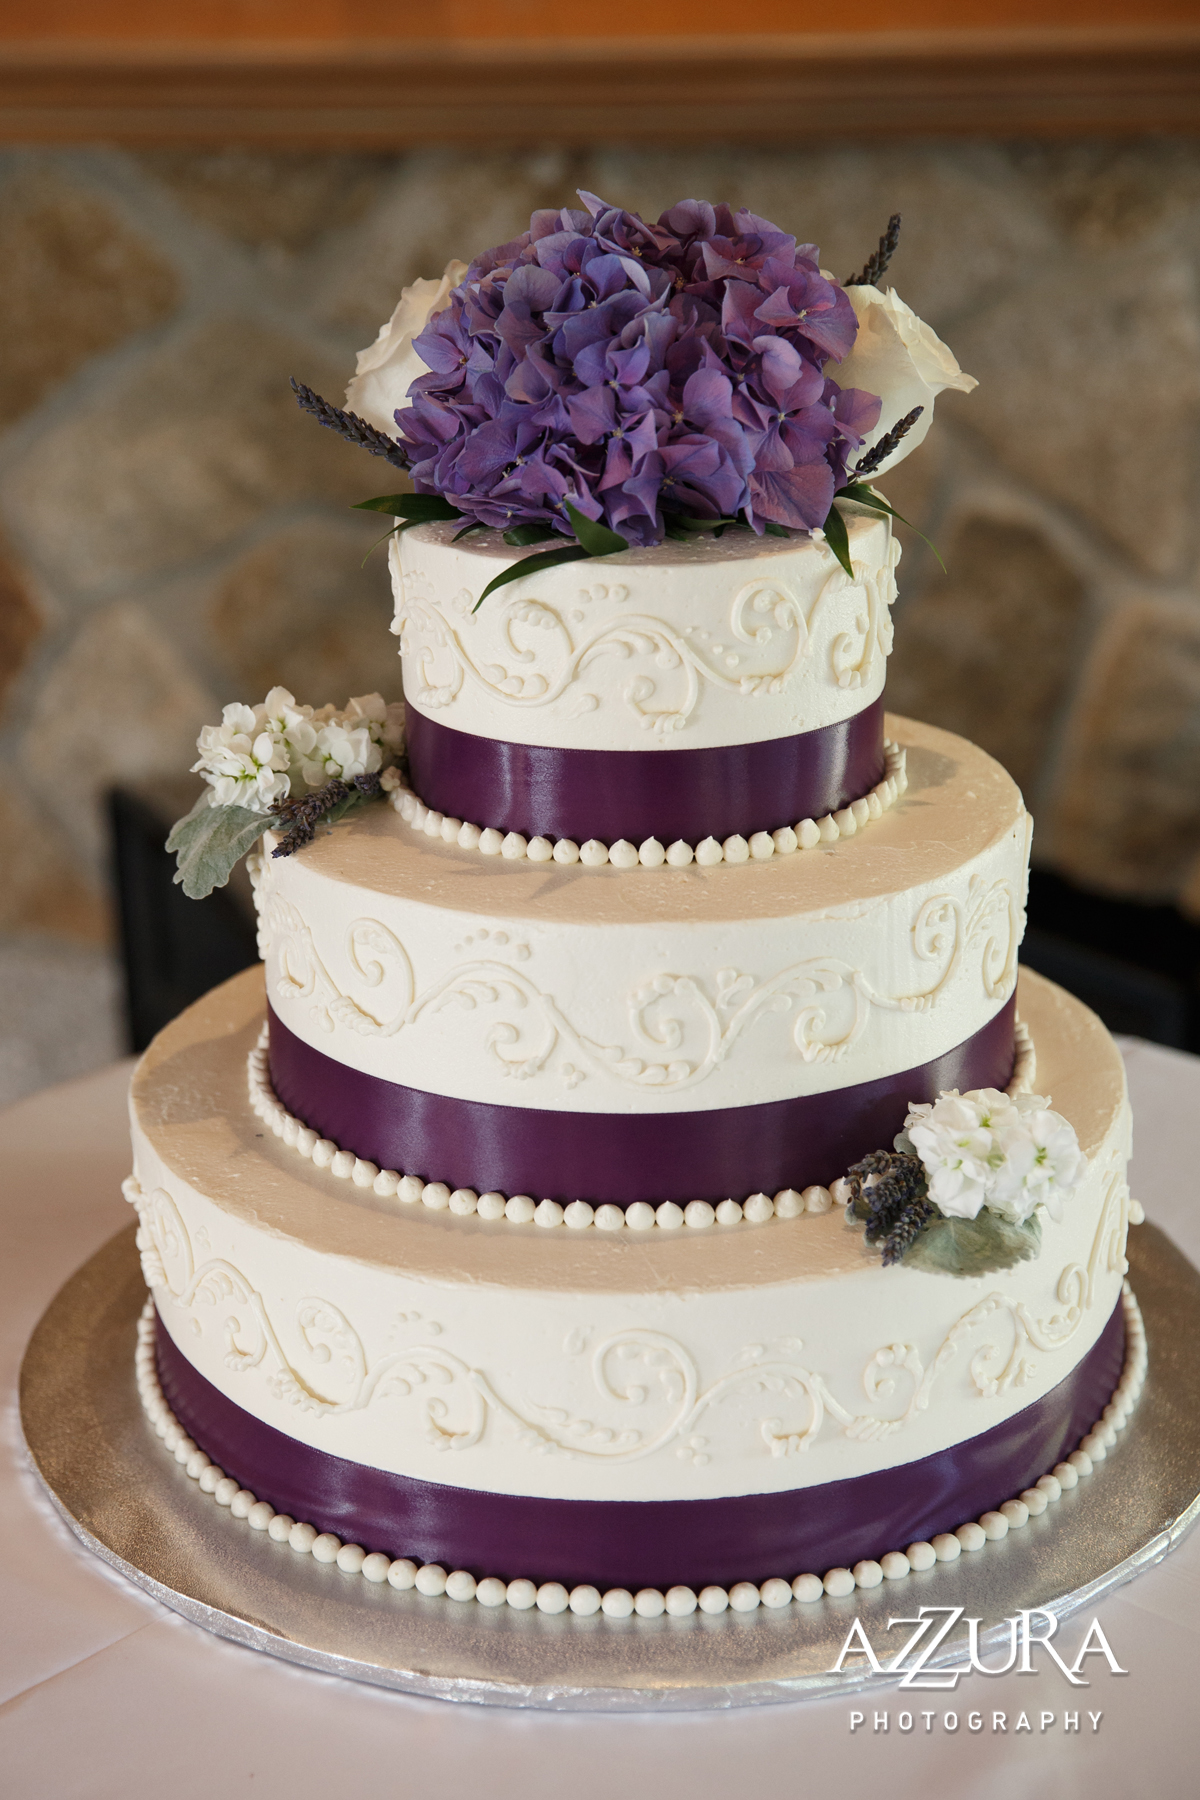 Laurel Creek Manor Wedding in Seattle | Purple hydrangea cake topper on three-tiered wedding cake with purple ribbon | Perfectly Posh Events, Seattle Wedding Planner | Azzura Photography | Sublime Stems